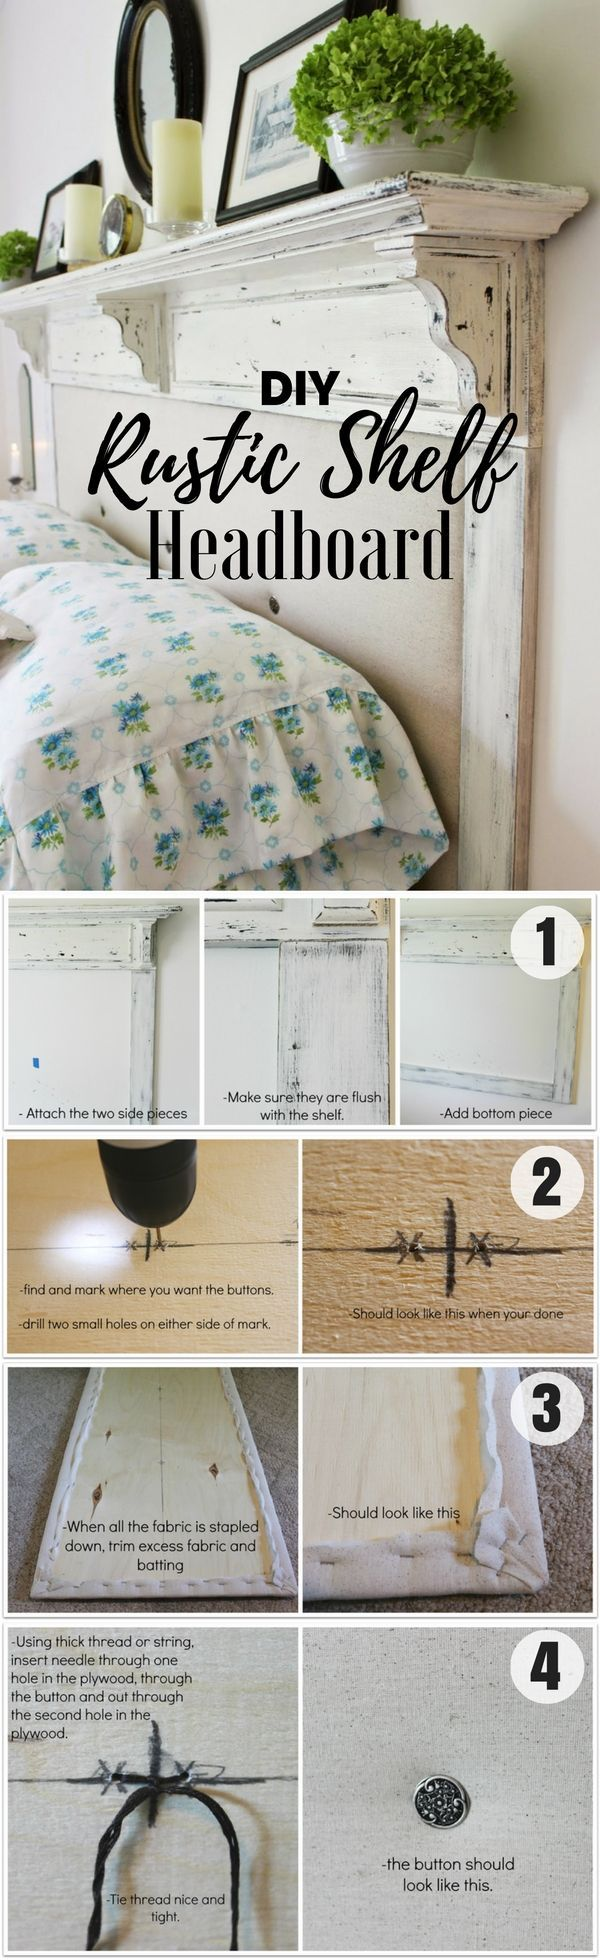 Ideas For Headboards How To Turn An Old Door Into A Headboard  Crown Doors And Interiors